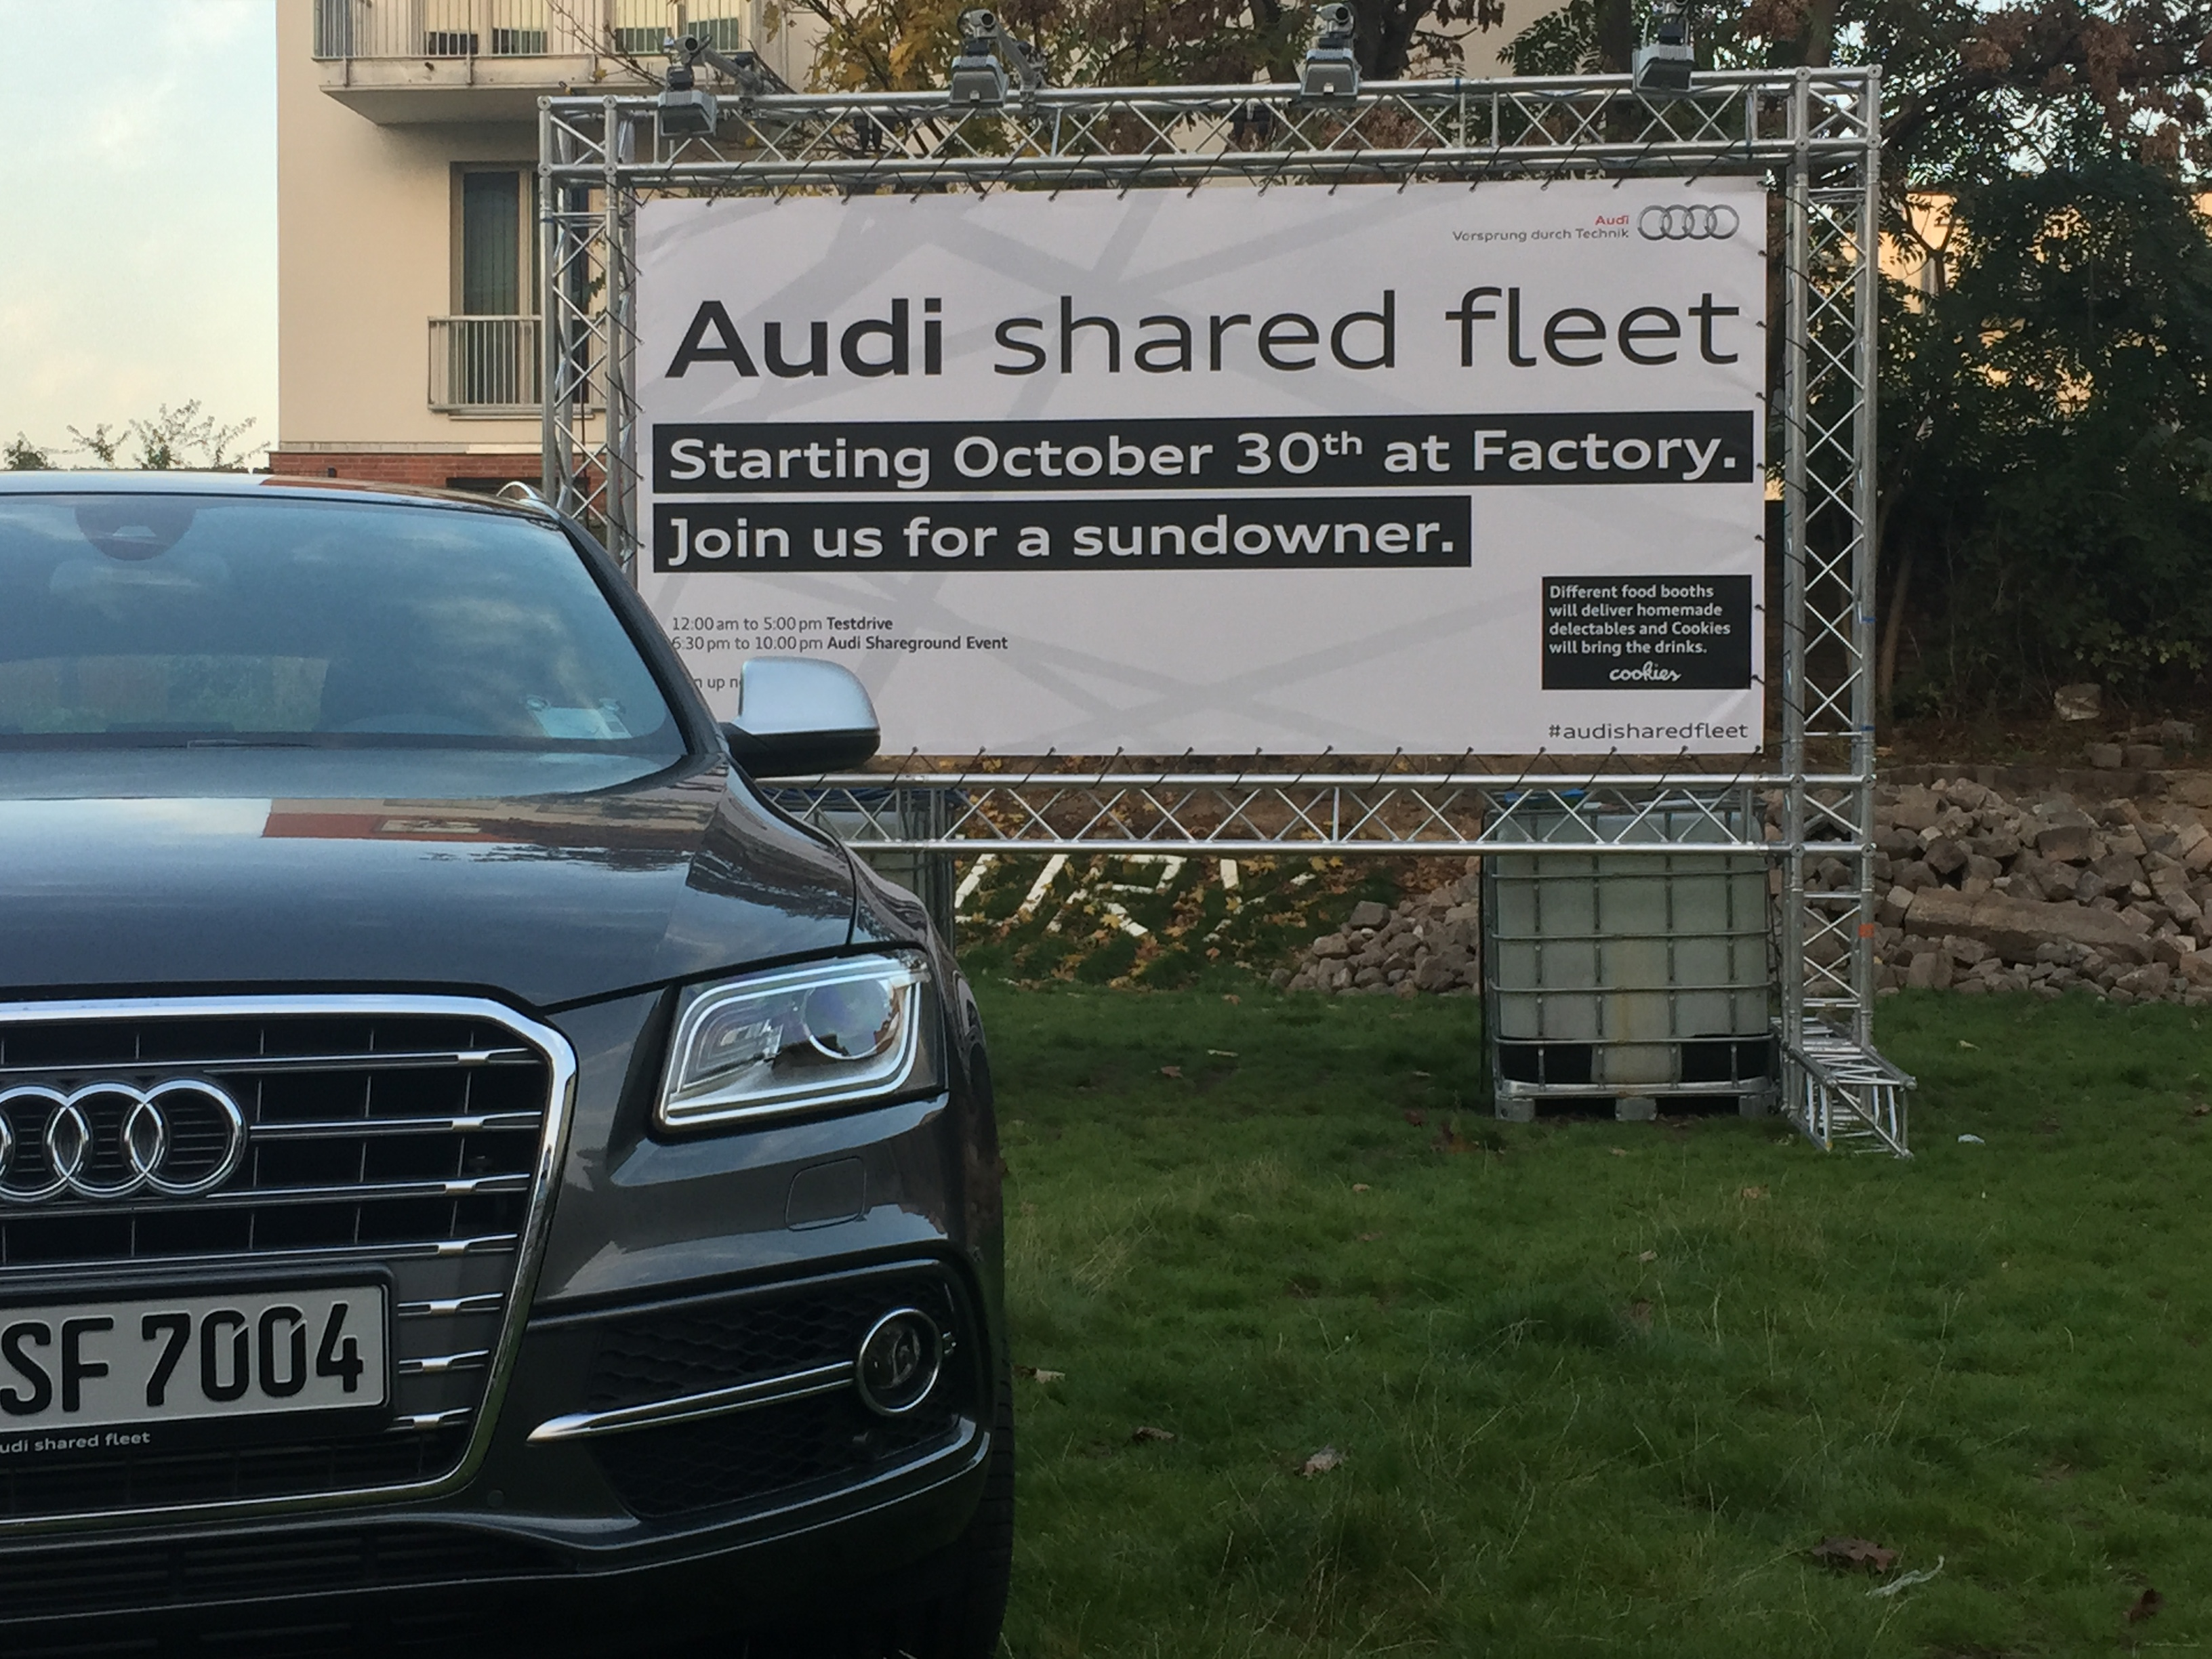 Carsharing City Audi Shared Fleet Targets Company Car Market - Audi sf